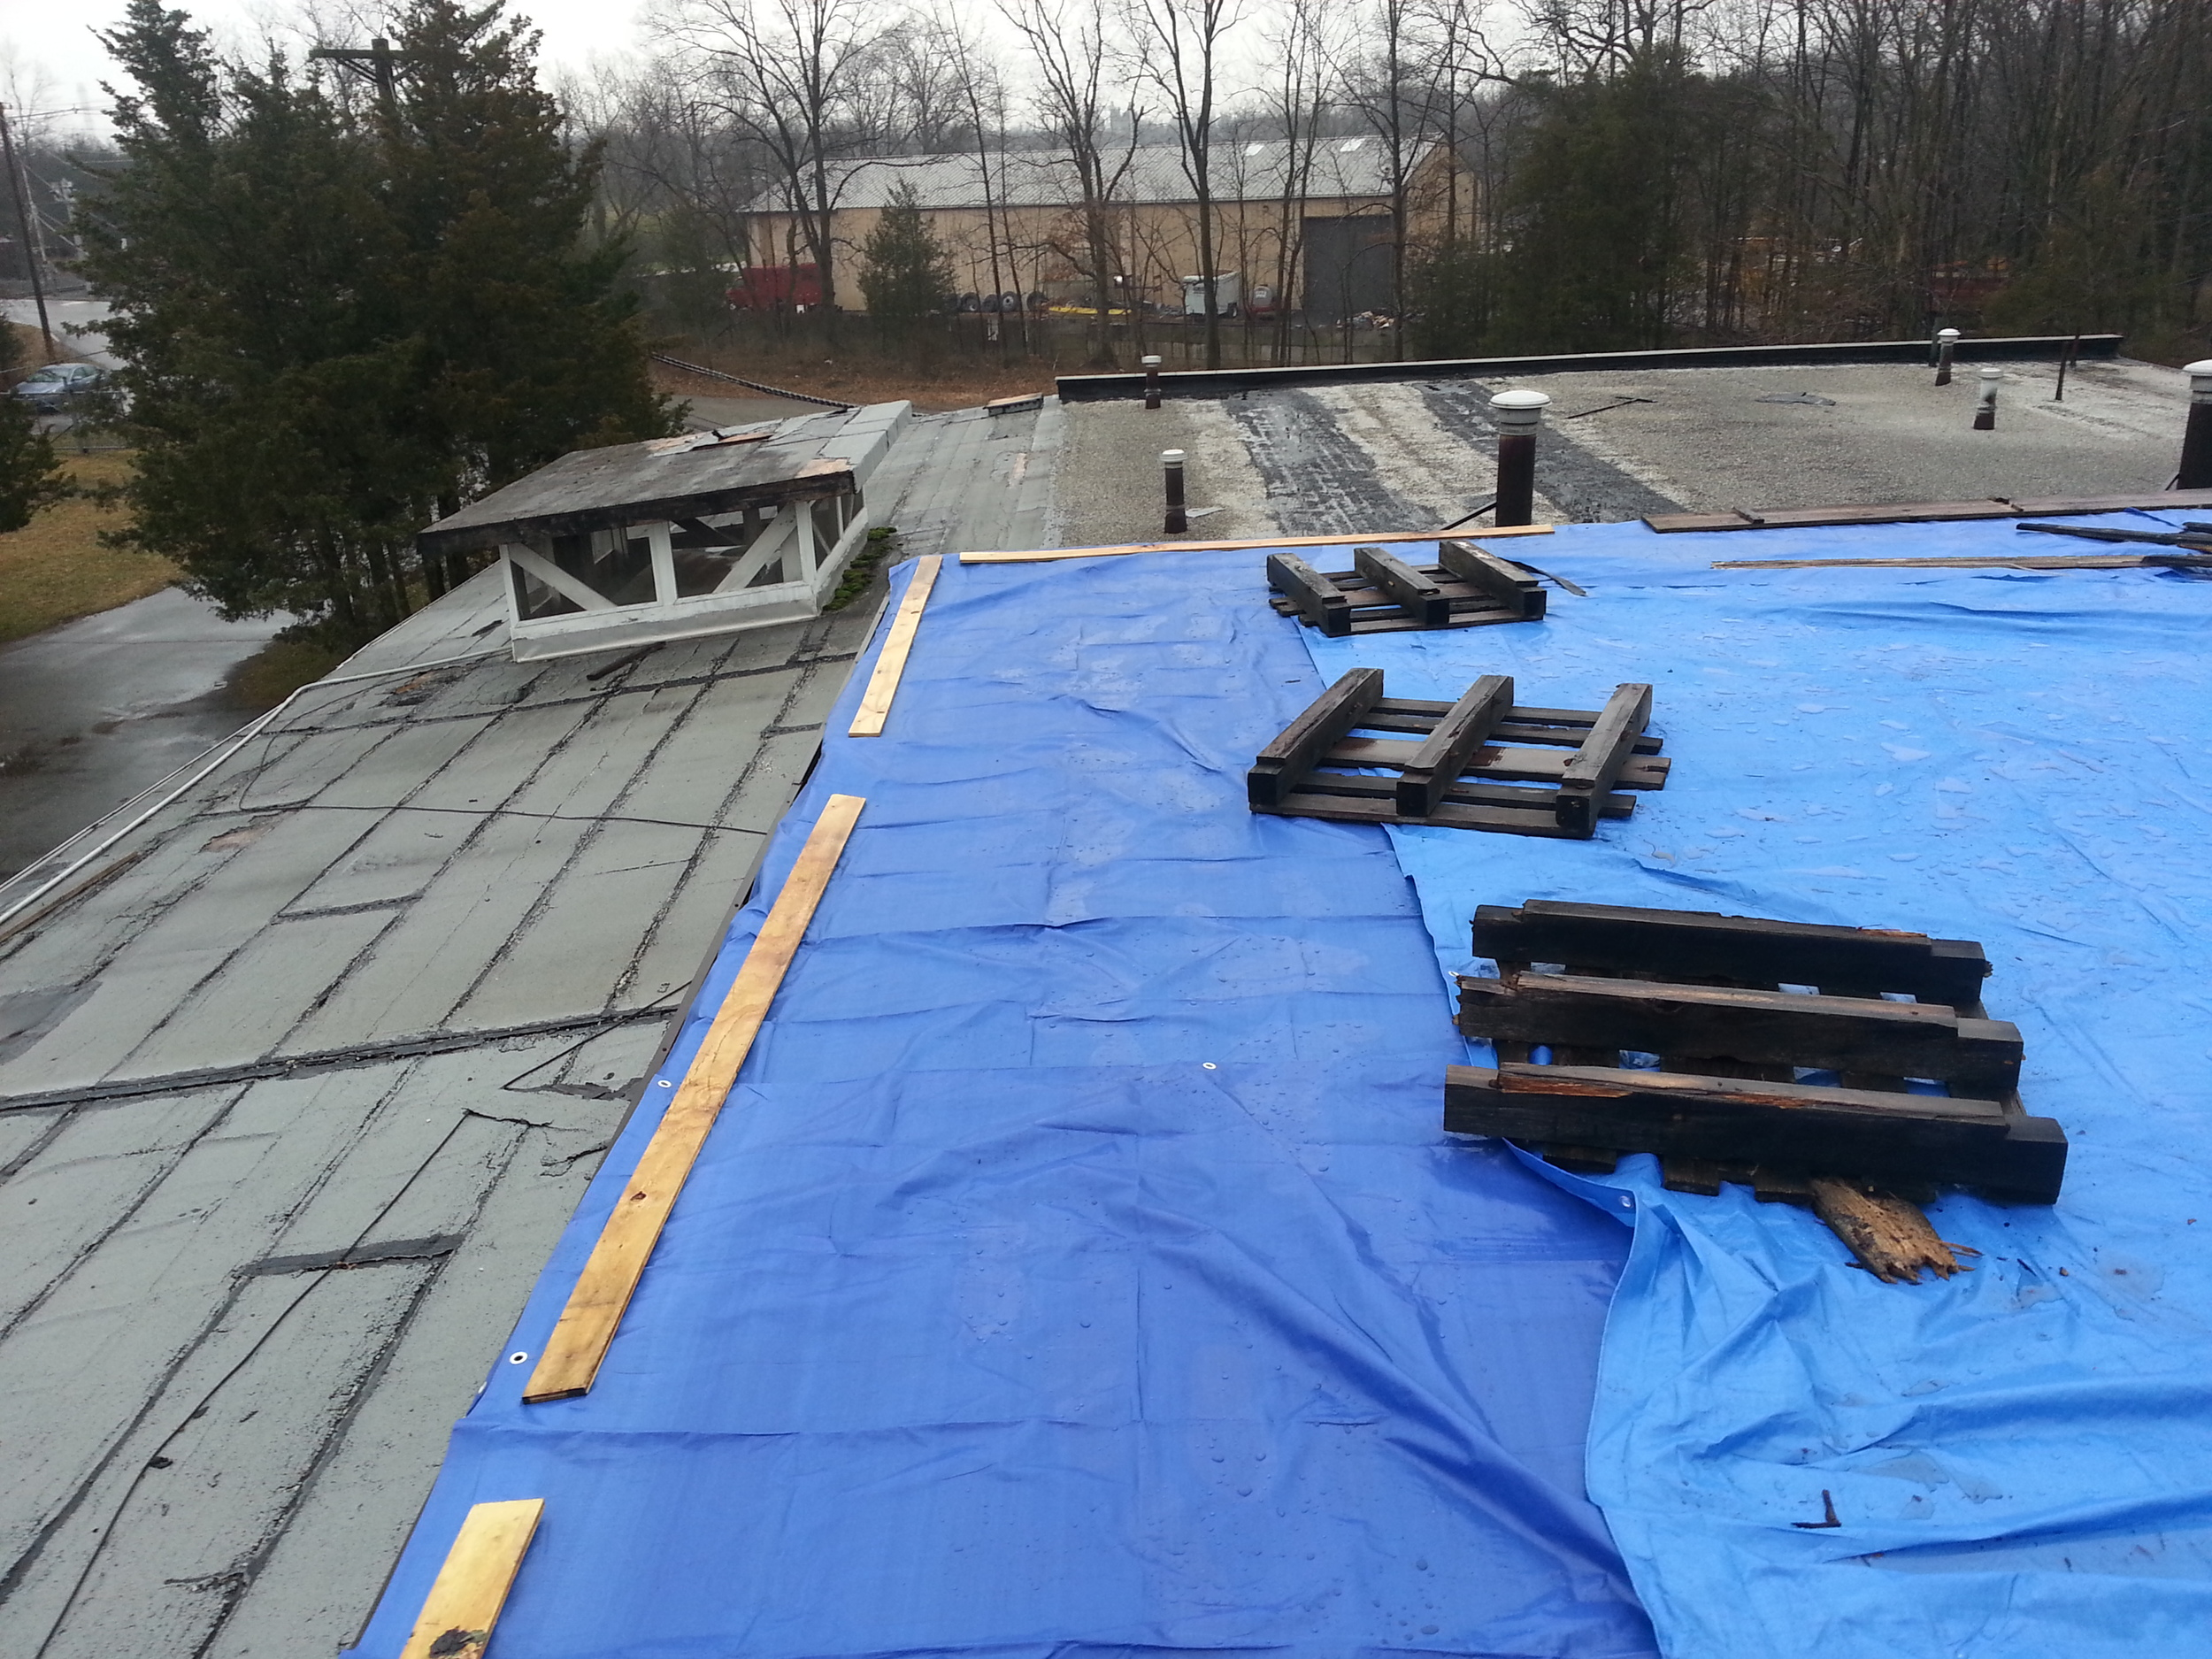 Flat roof before replacement